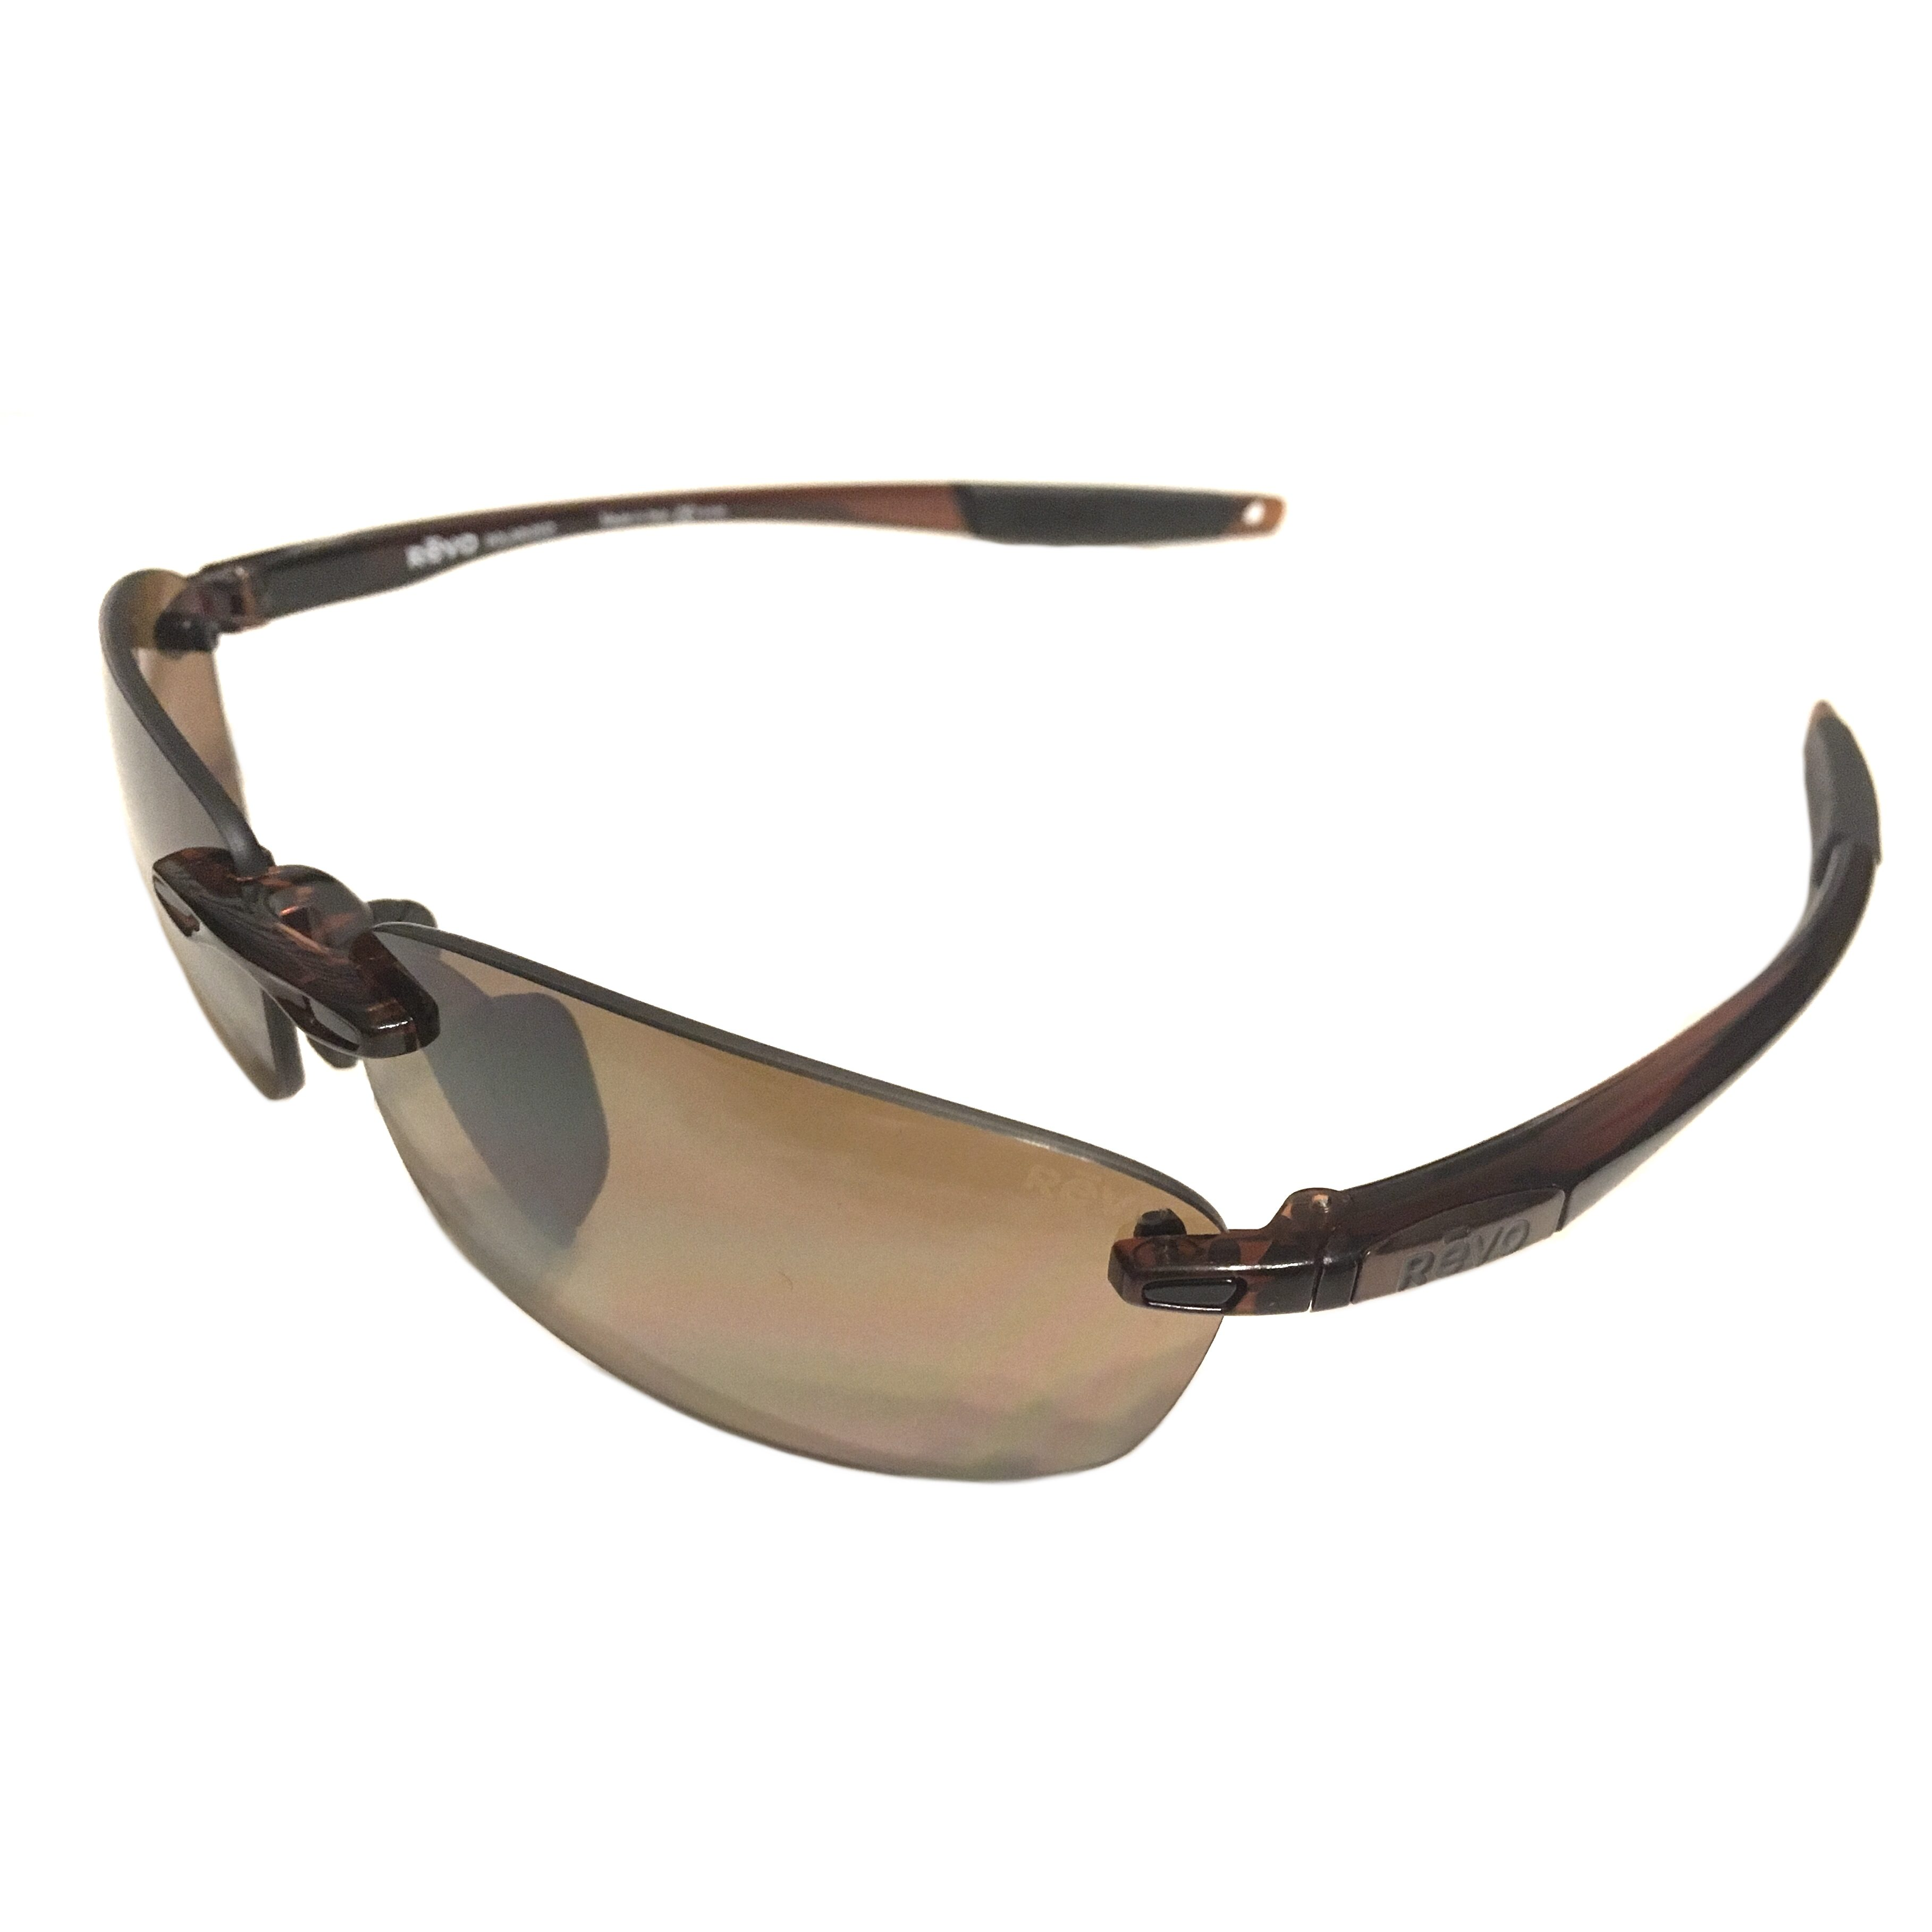 900493b0416 Revo Descend E Sunglasses - Crystal Brown Rimless Frame - Polarized Terra  RE4060GF 02 BR Lens